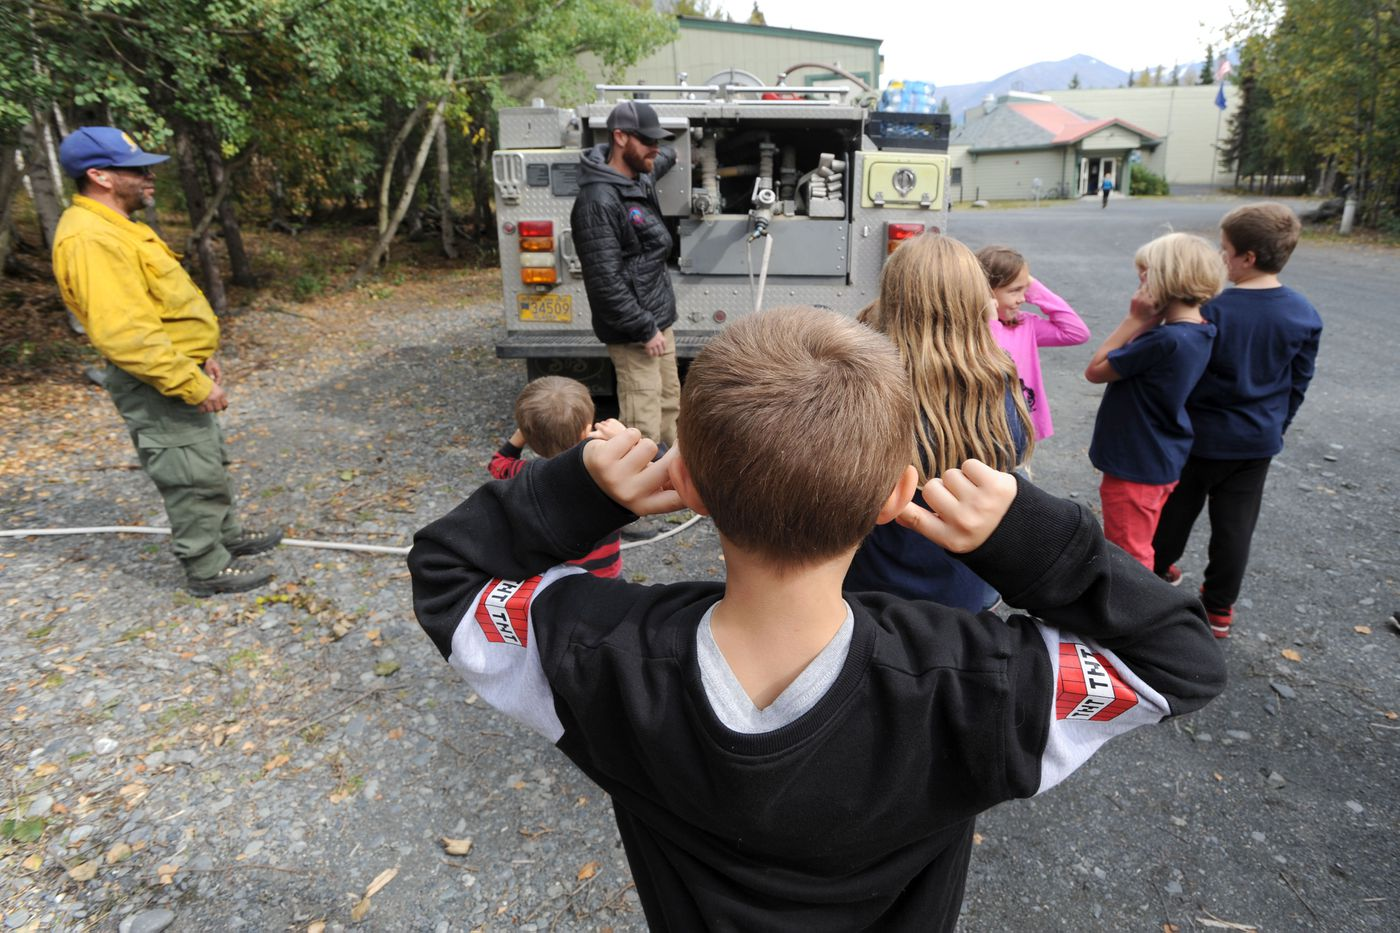 Students at Cooper Landing school get a demonstration of a fire truck Sept. 6, 2019. The group of firefighters visited the school to help the children understand the equipment and the efforts to fight the Swan Lake fire. (Anne Raup / ADN)